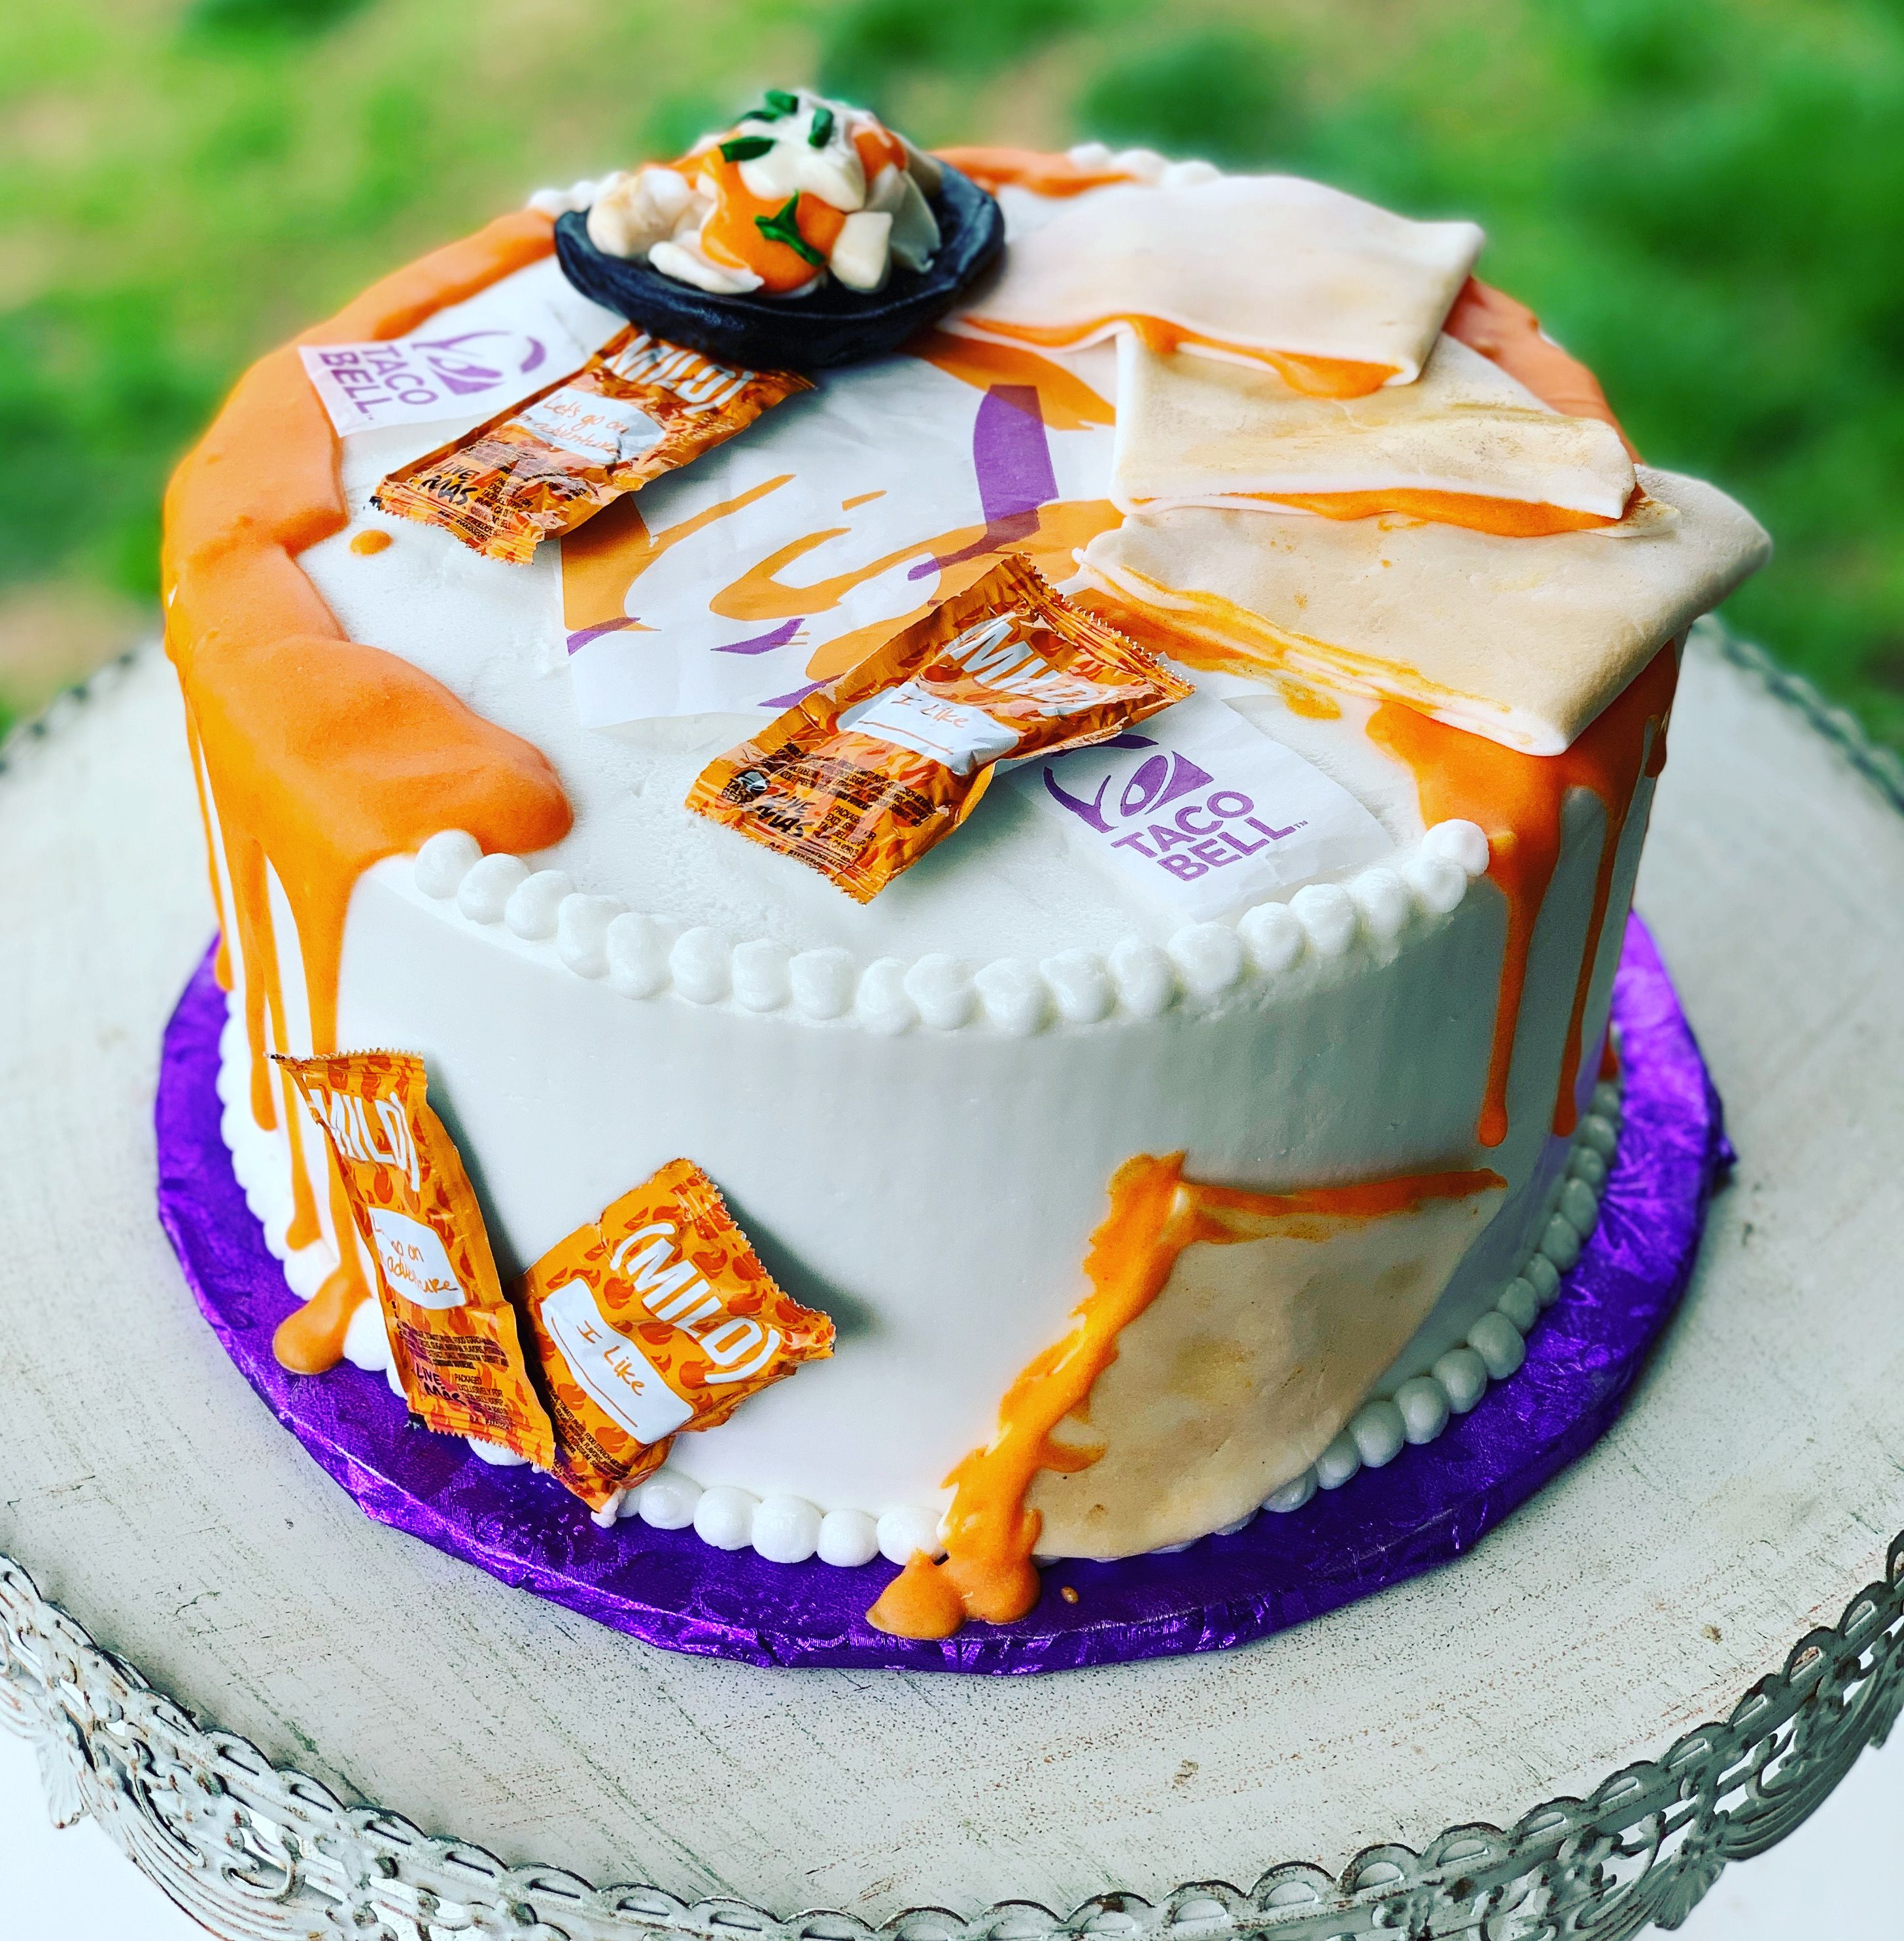 Cakes by me image by sarah adams in 2020 cake desserts